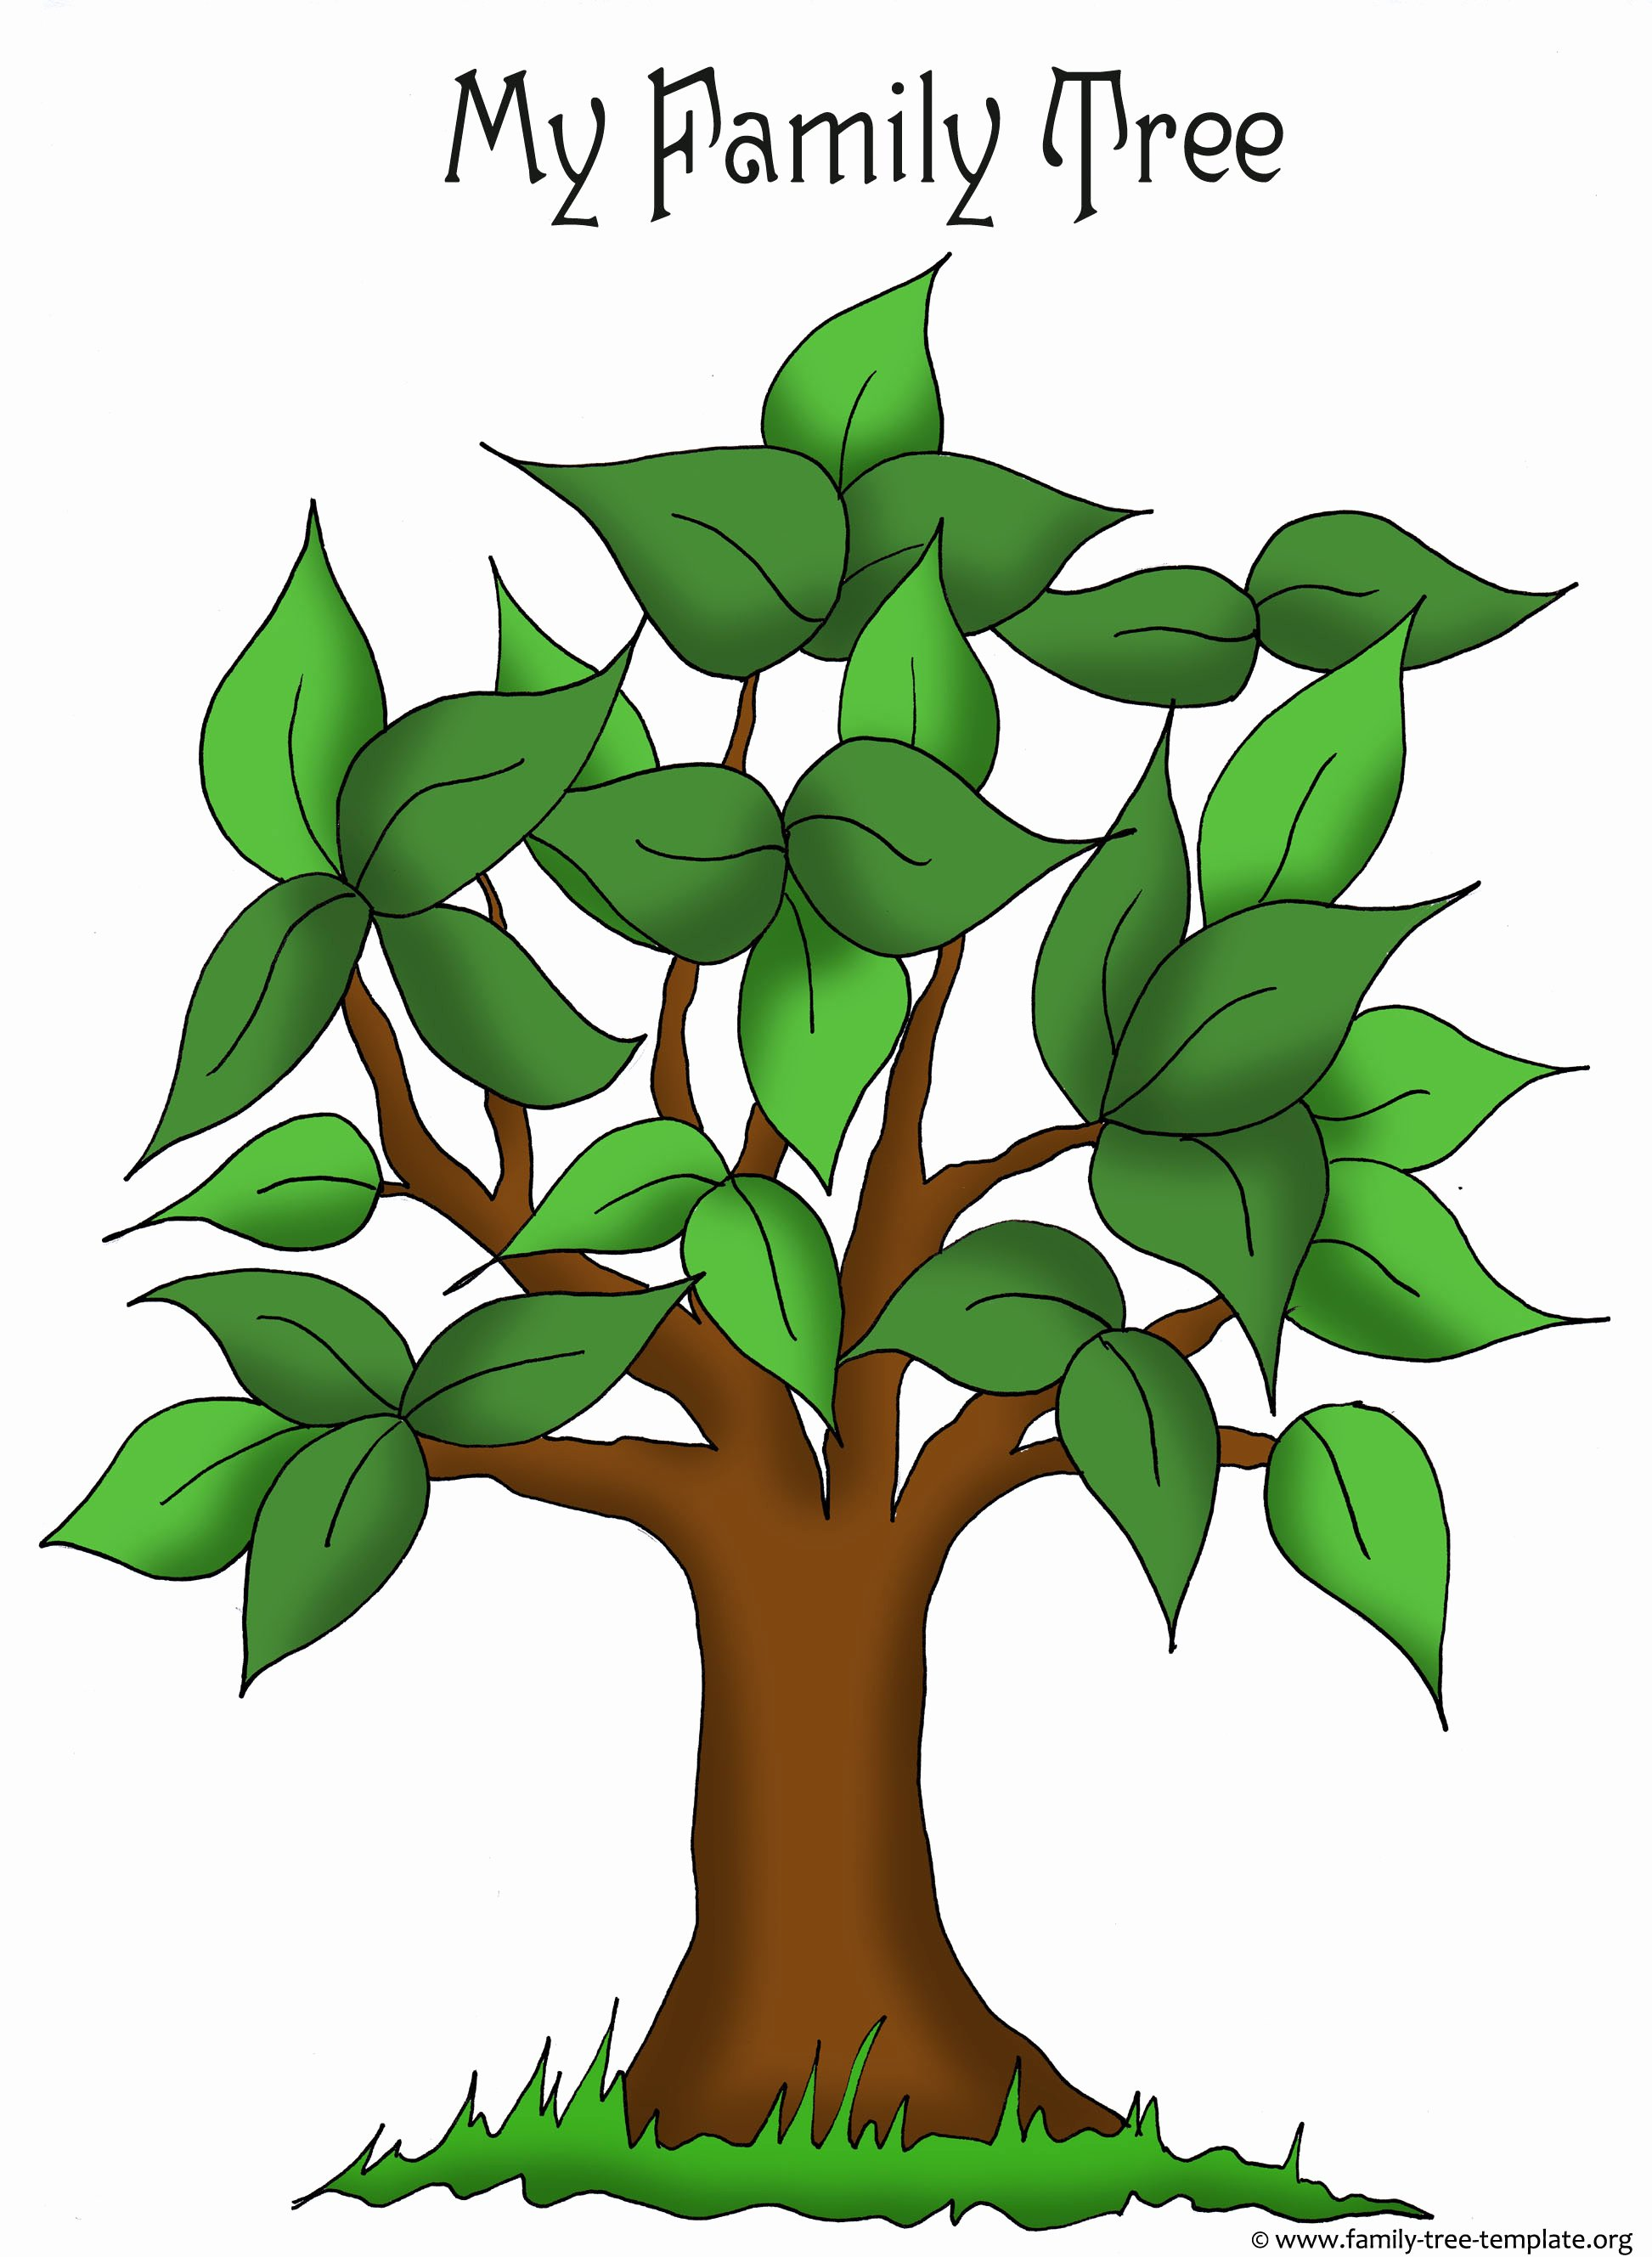 Family Tree Templates & Genealogy Clipart for Your